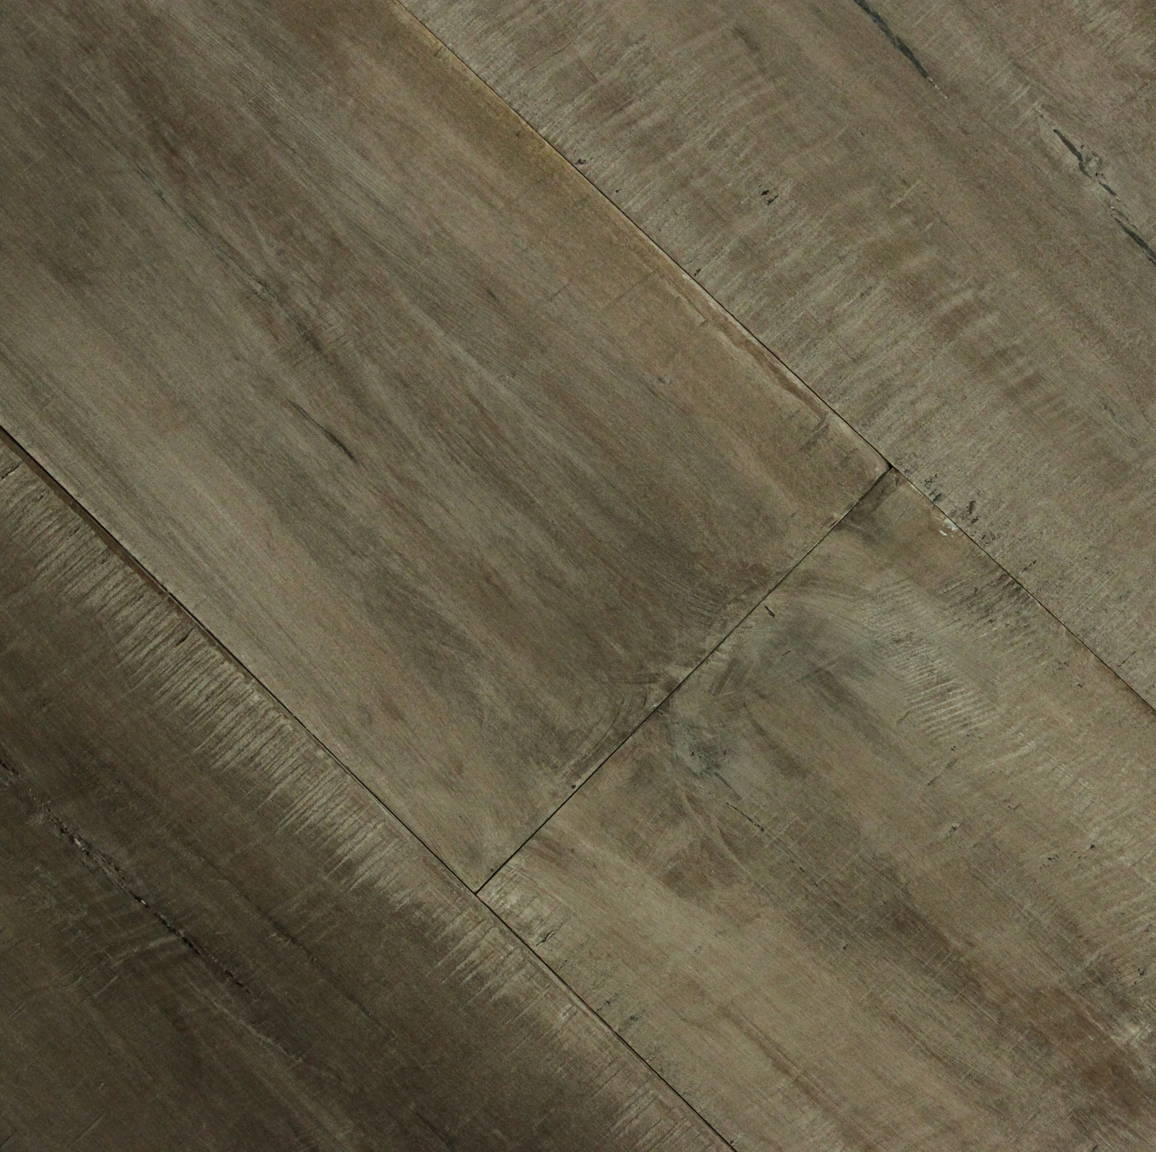 Will It Make a Difference Choosing the Right Wood Species